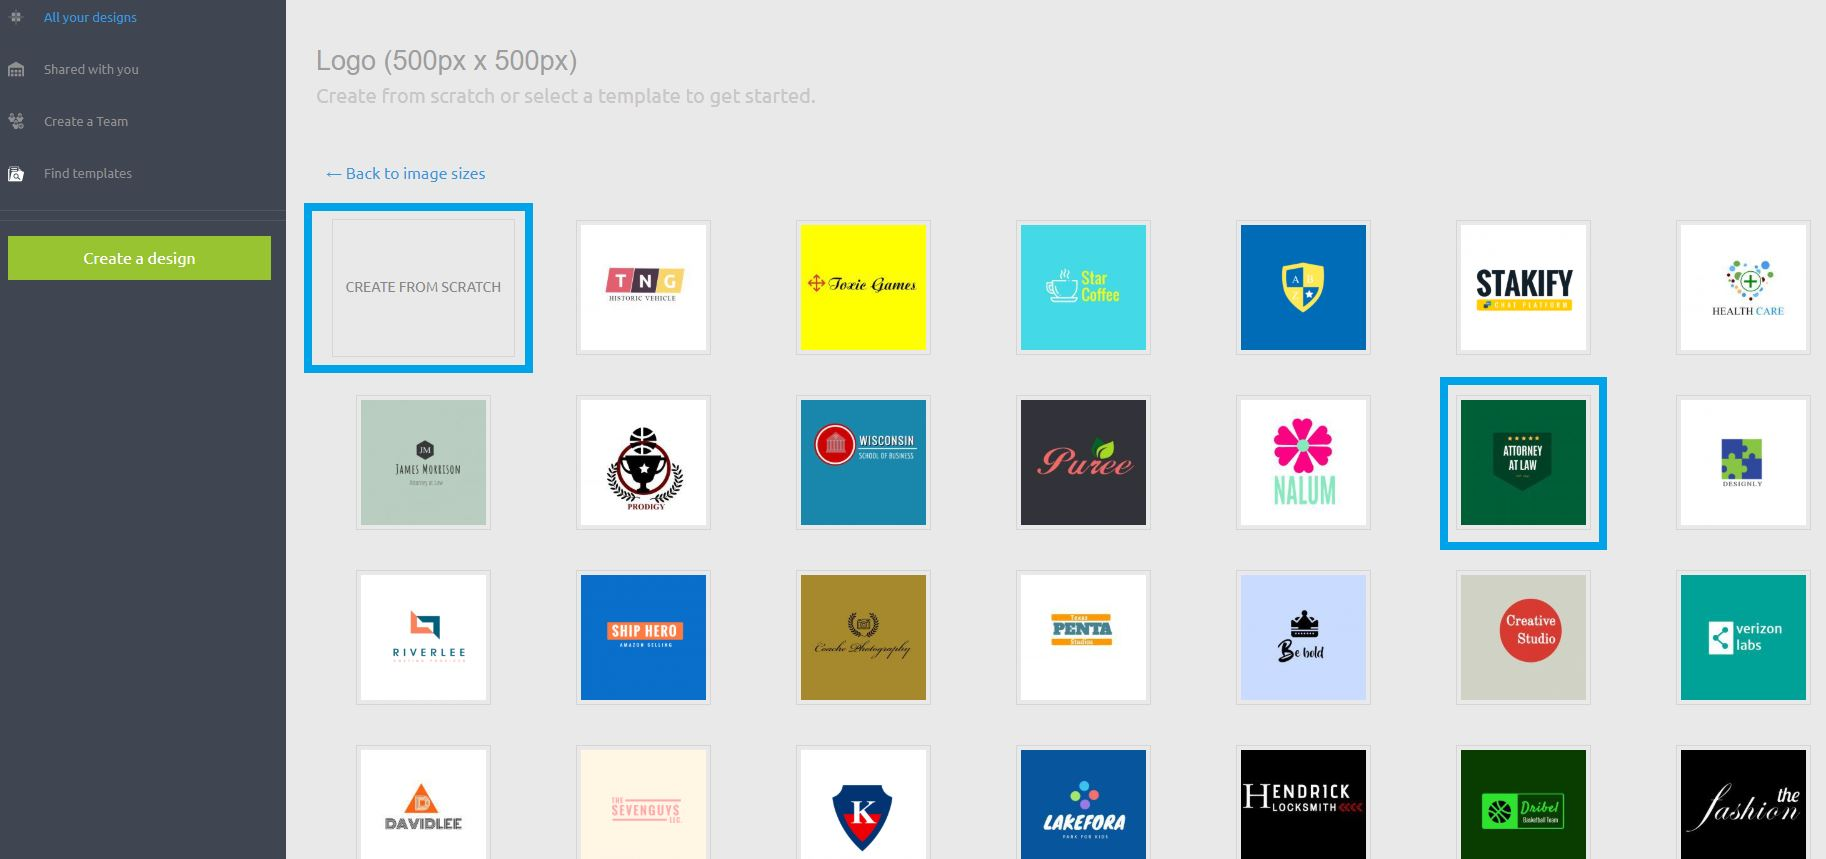 Free Logo Maker - Create high quality professional logo in 3 minutes